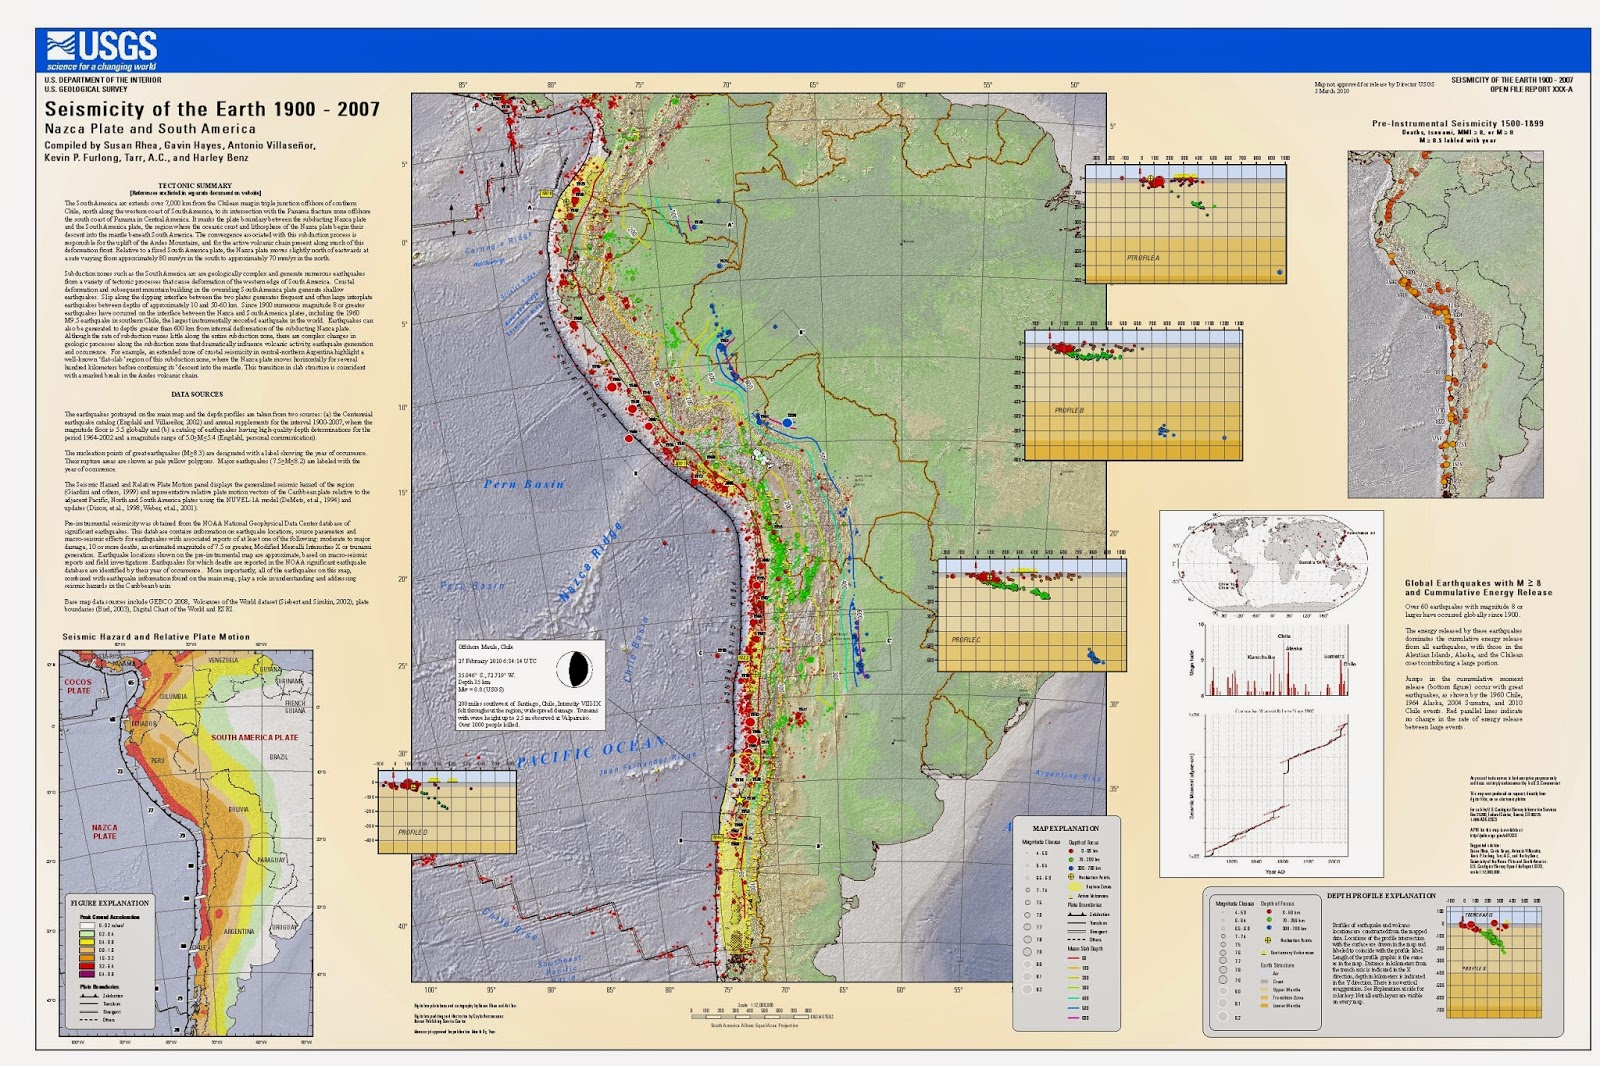 the south american arc extends over 7 000 km from the chilean margin triple junction offshore of southern chile to its intersection with the panama